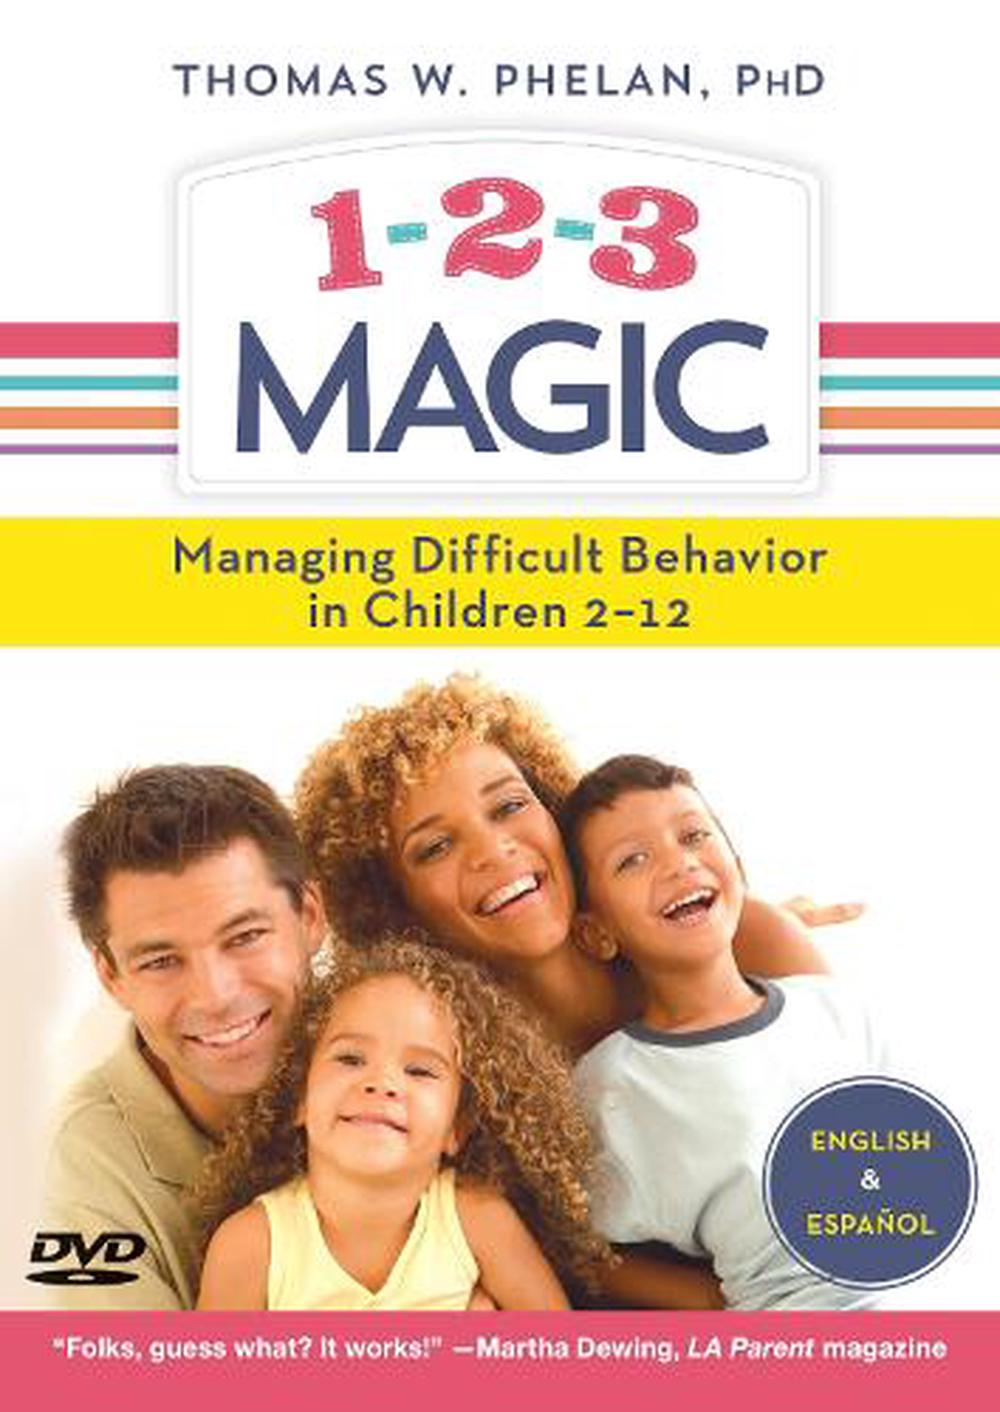 1-2-3 Magic (DVD): Managing Difficult Behavior in Children 2-12